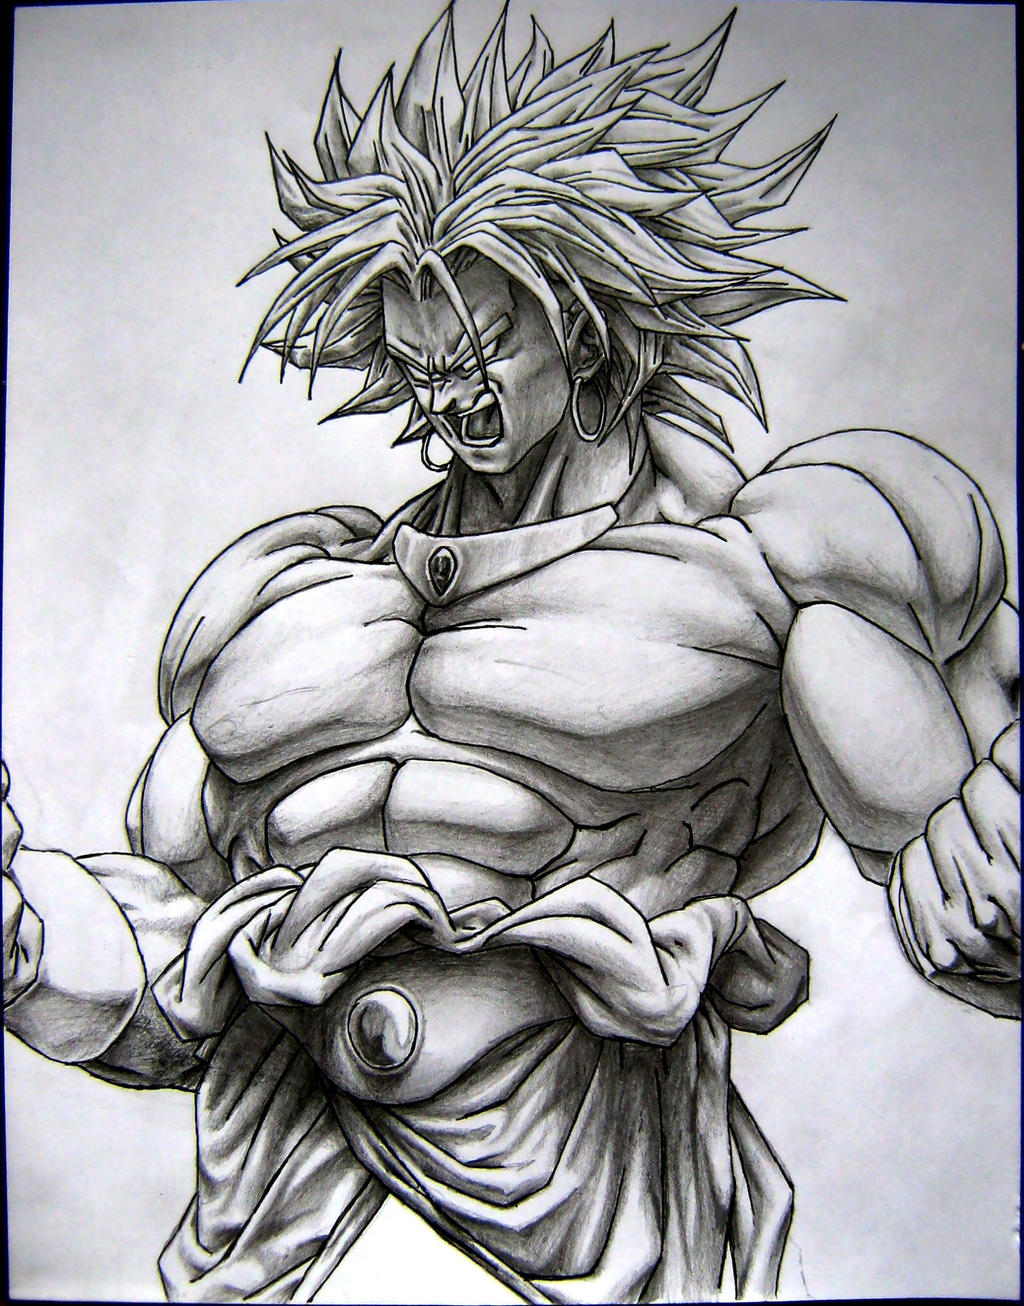 Broly the super saiyan by TicoDrawing on DeviantArt